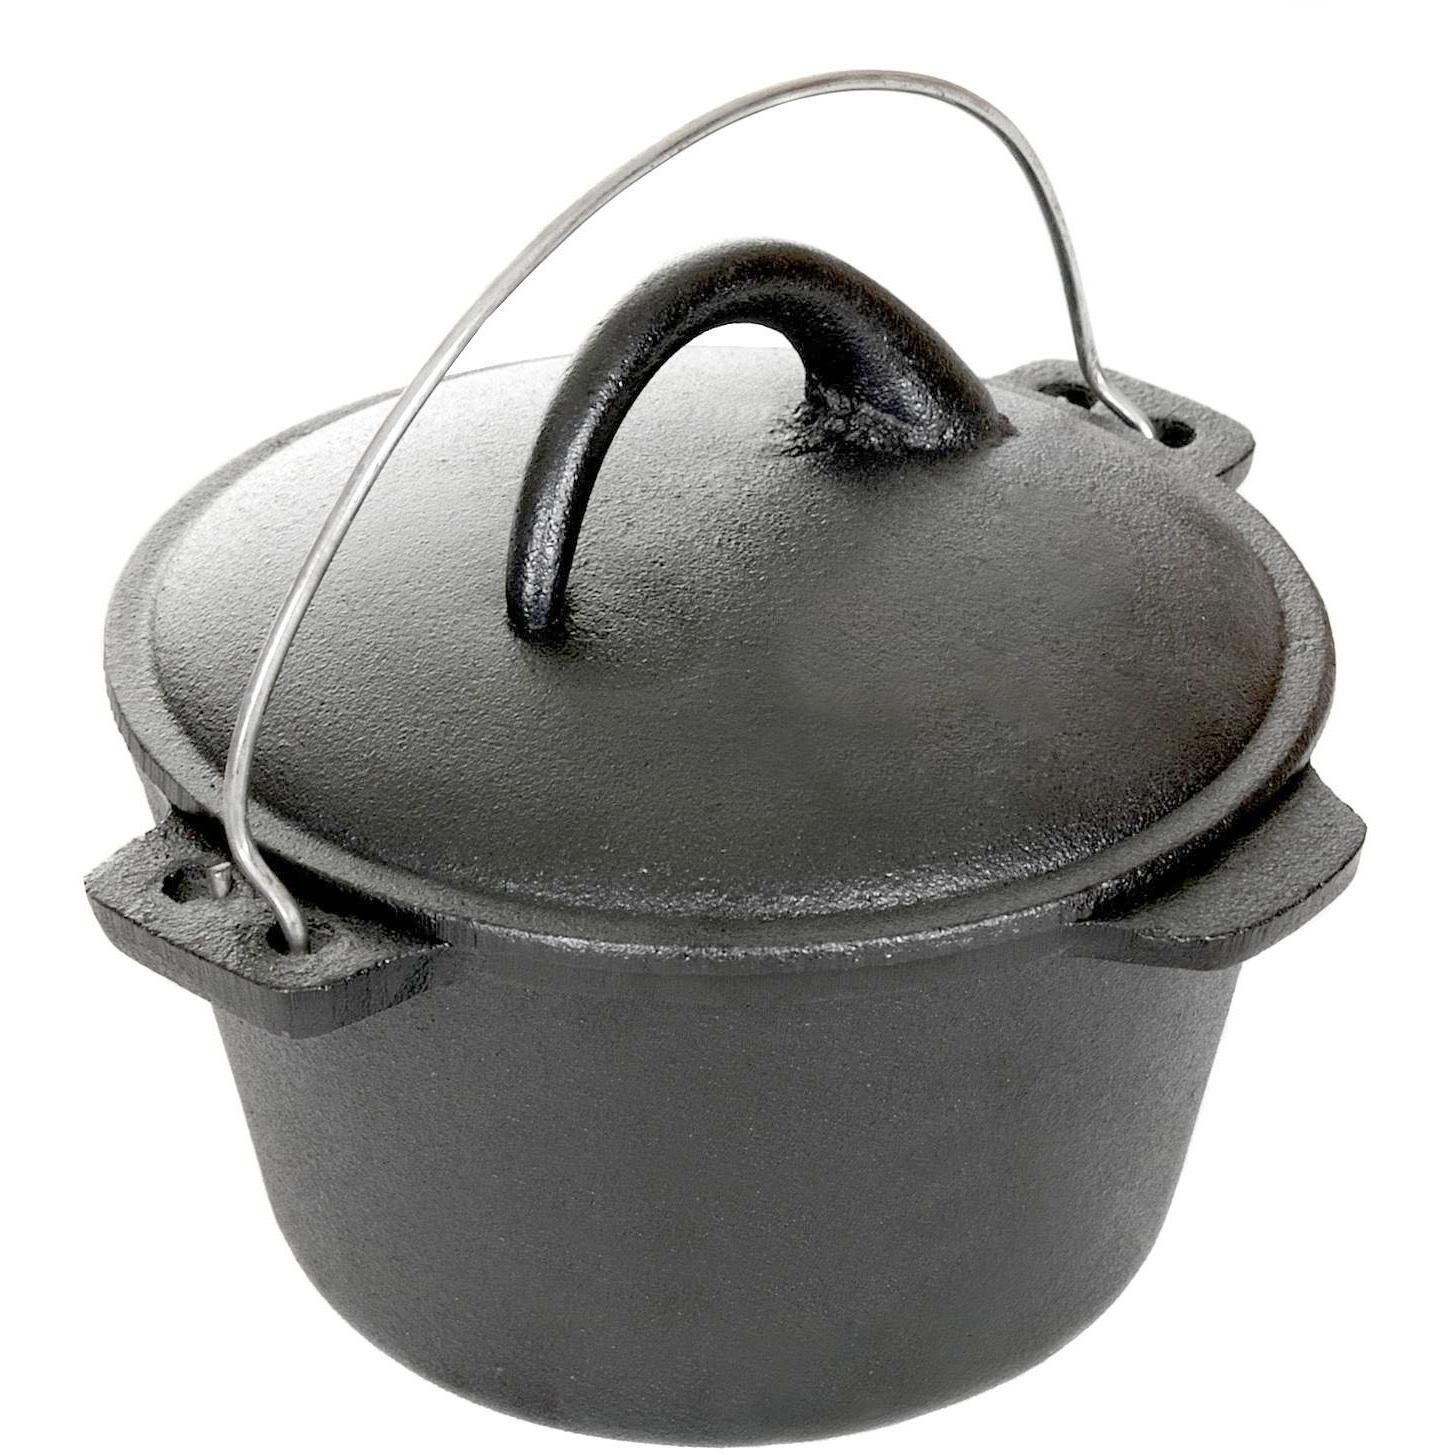 Cajun Cookware 1-quart Unseasoned Cast Iron Dutch Oven - Gl10485b